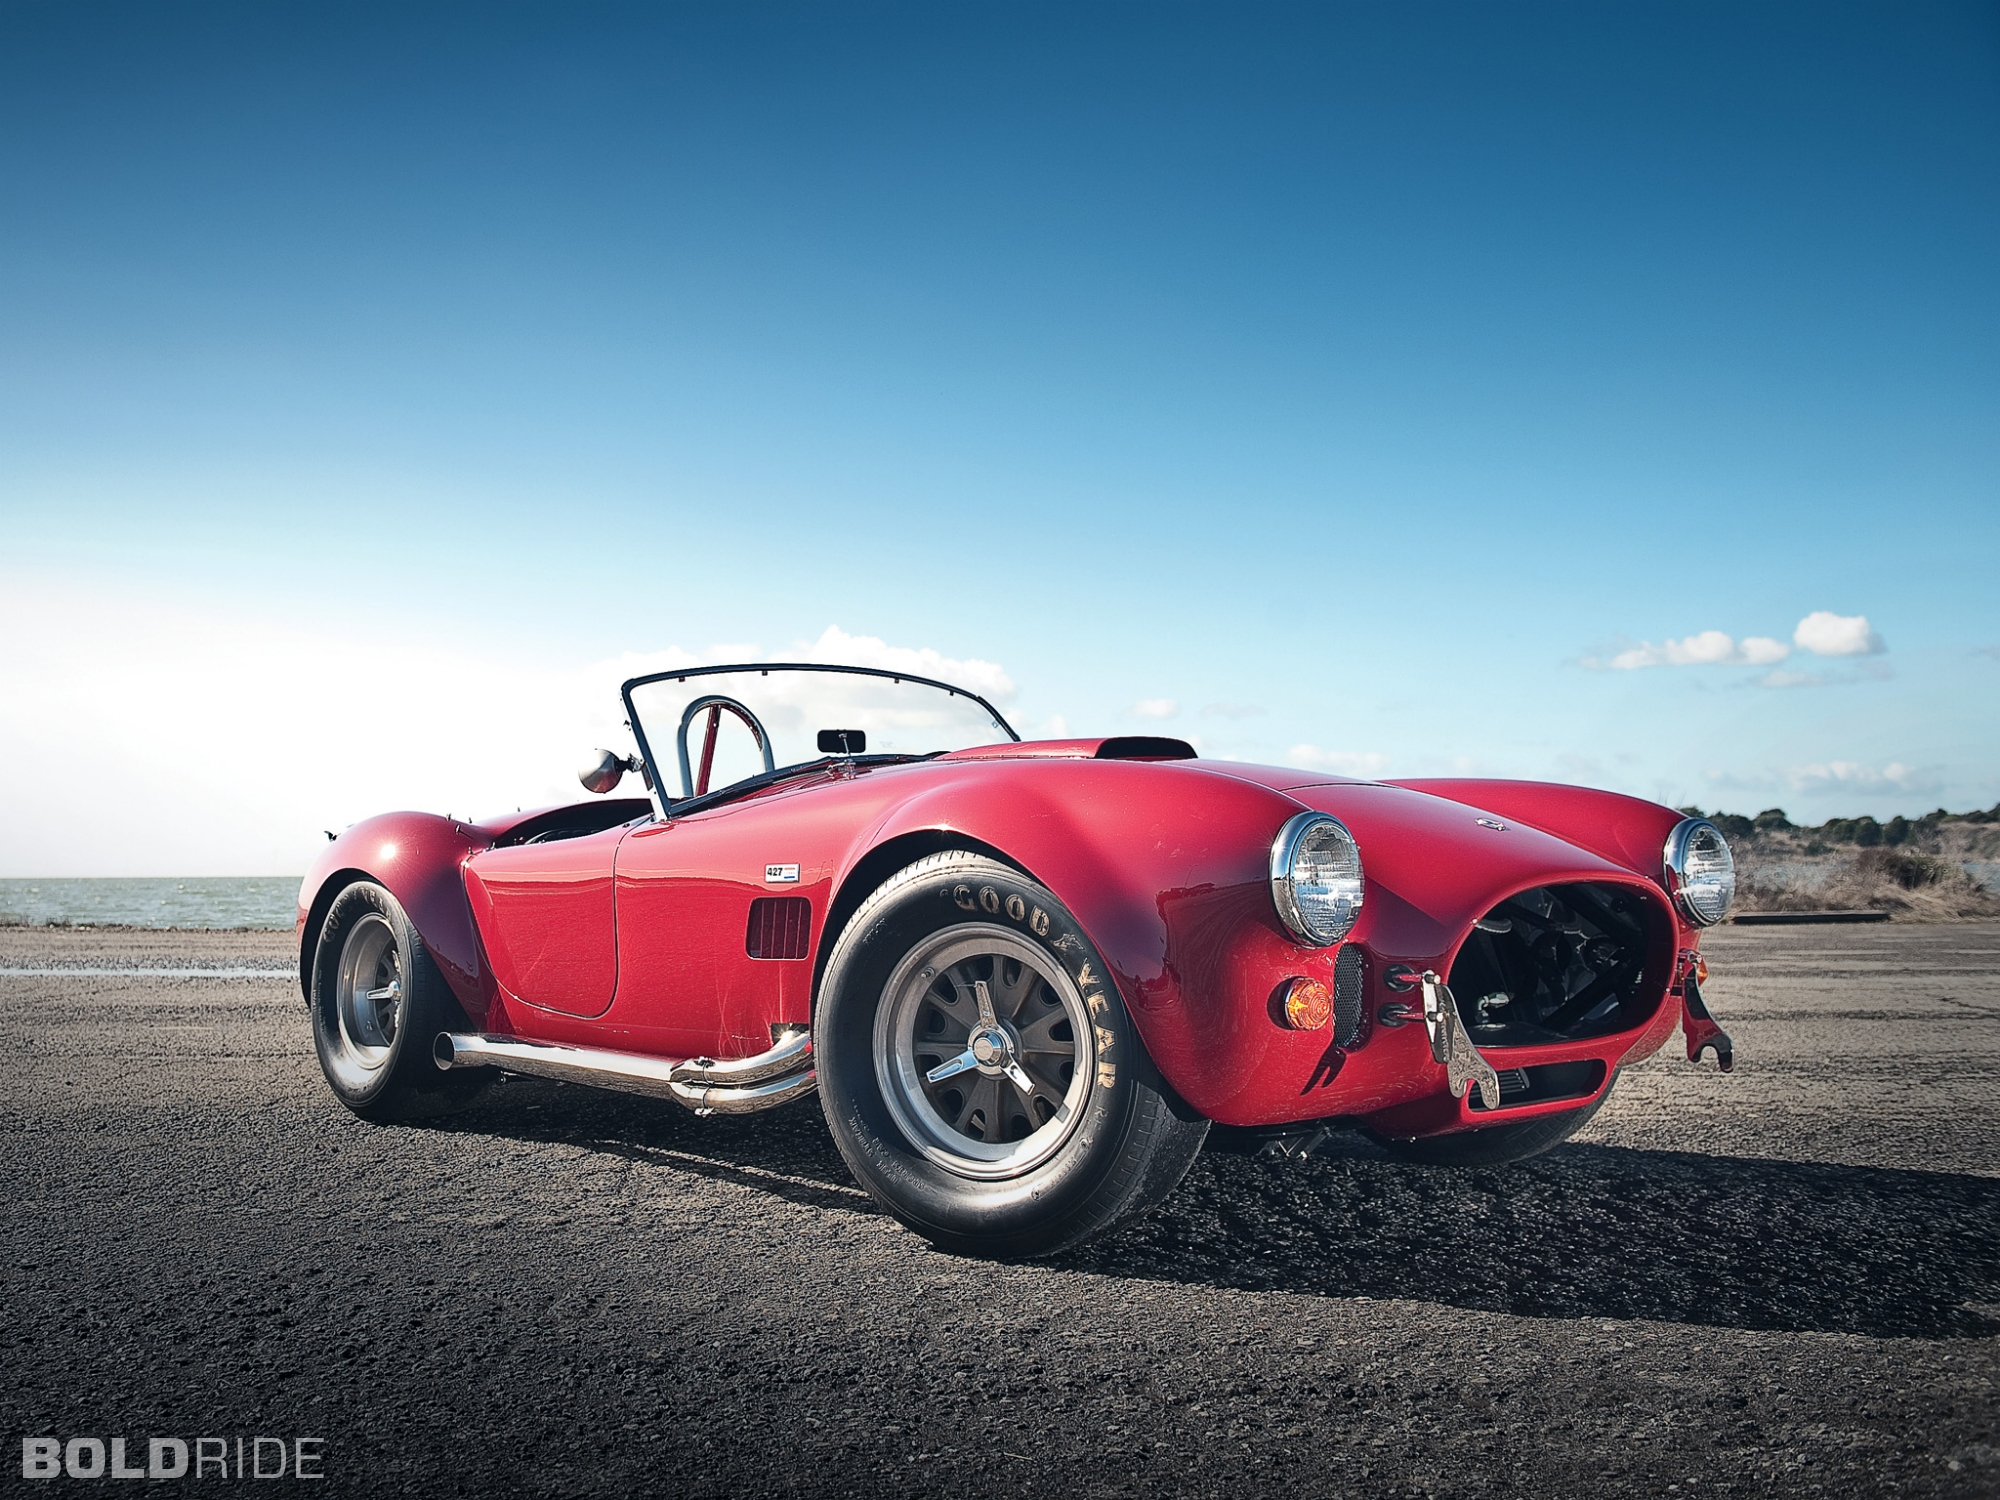 427 shelby cobra wallpaper wallpapersafari. Black Bedroom Furniture Sets. Home Design Ideas